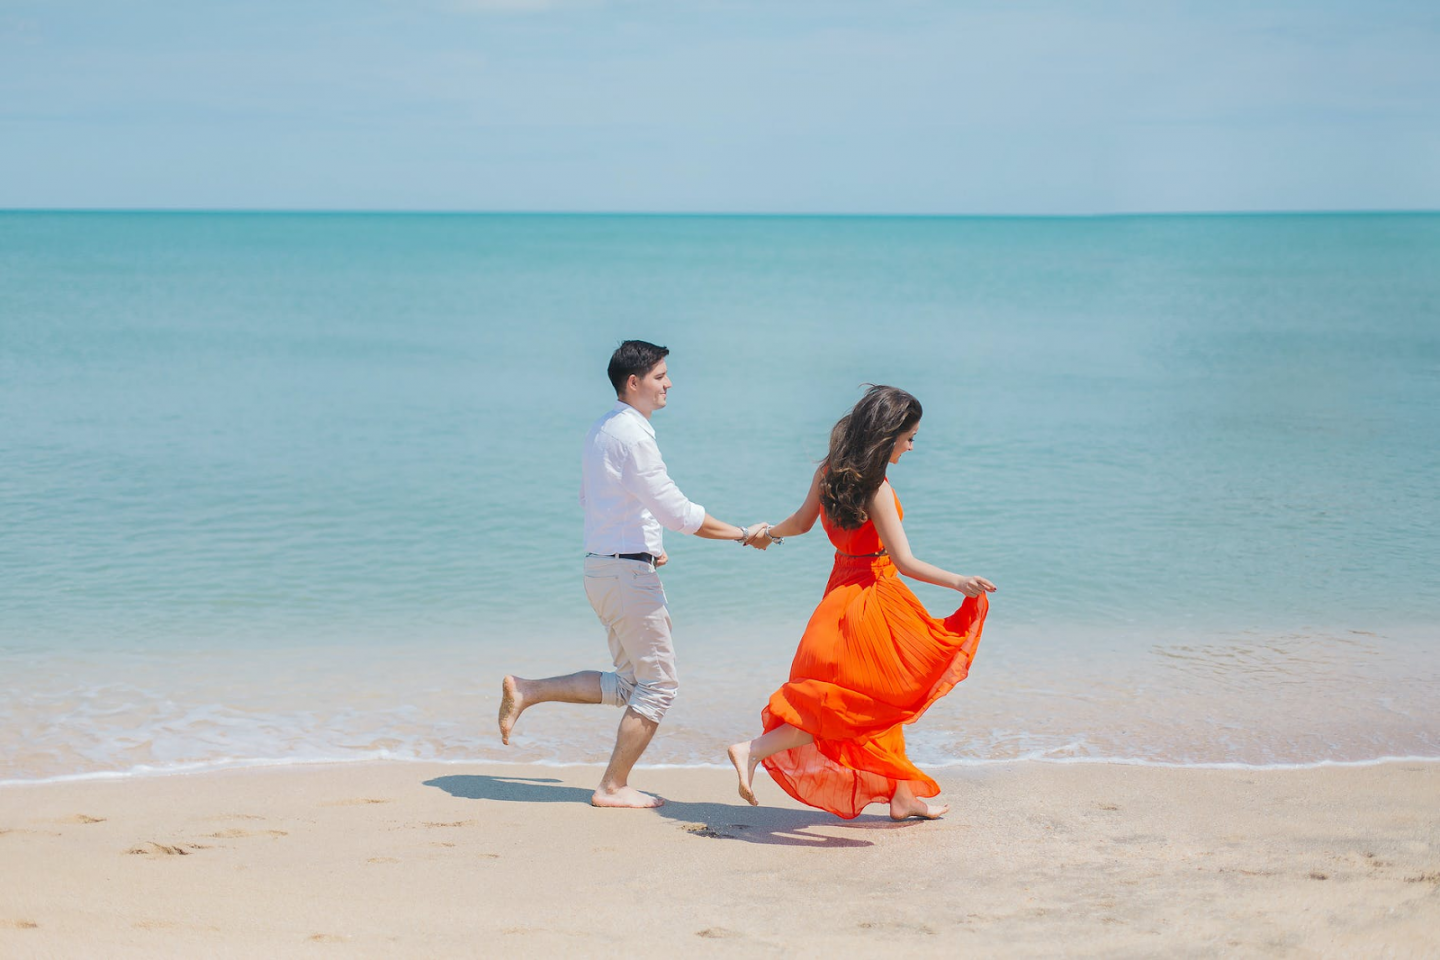 WHEN IT'S NOT ALL OVER YET: HOW TO GET YOUR MARRIAGE BACK ON TRACK